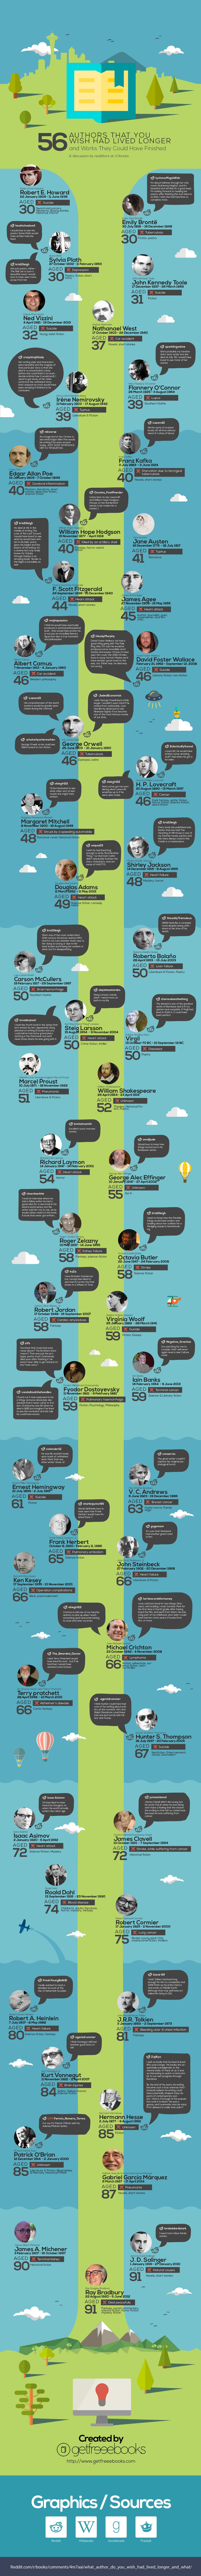 (Infographic) 56 Authors That You Wish Had Lived Longer and Works They Could Have Finished